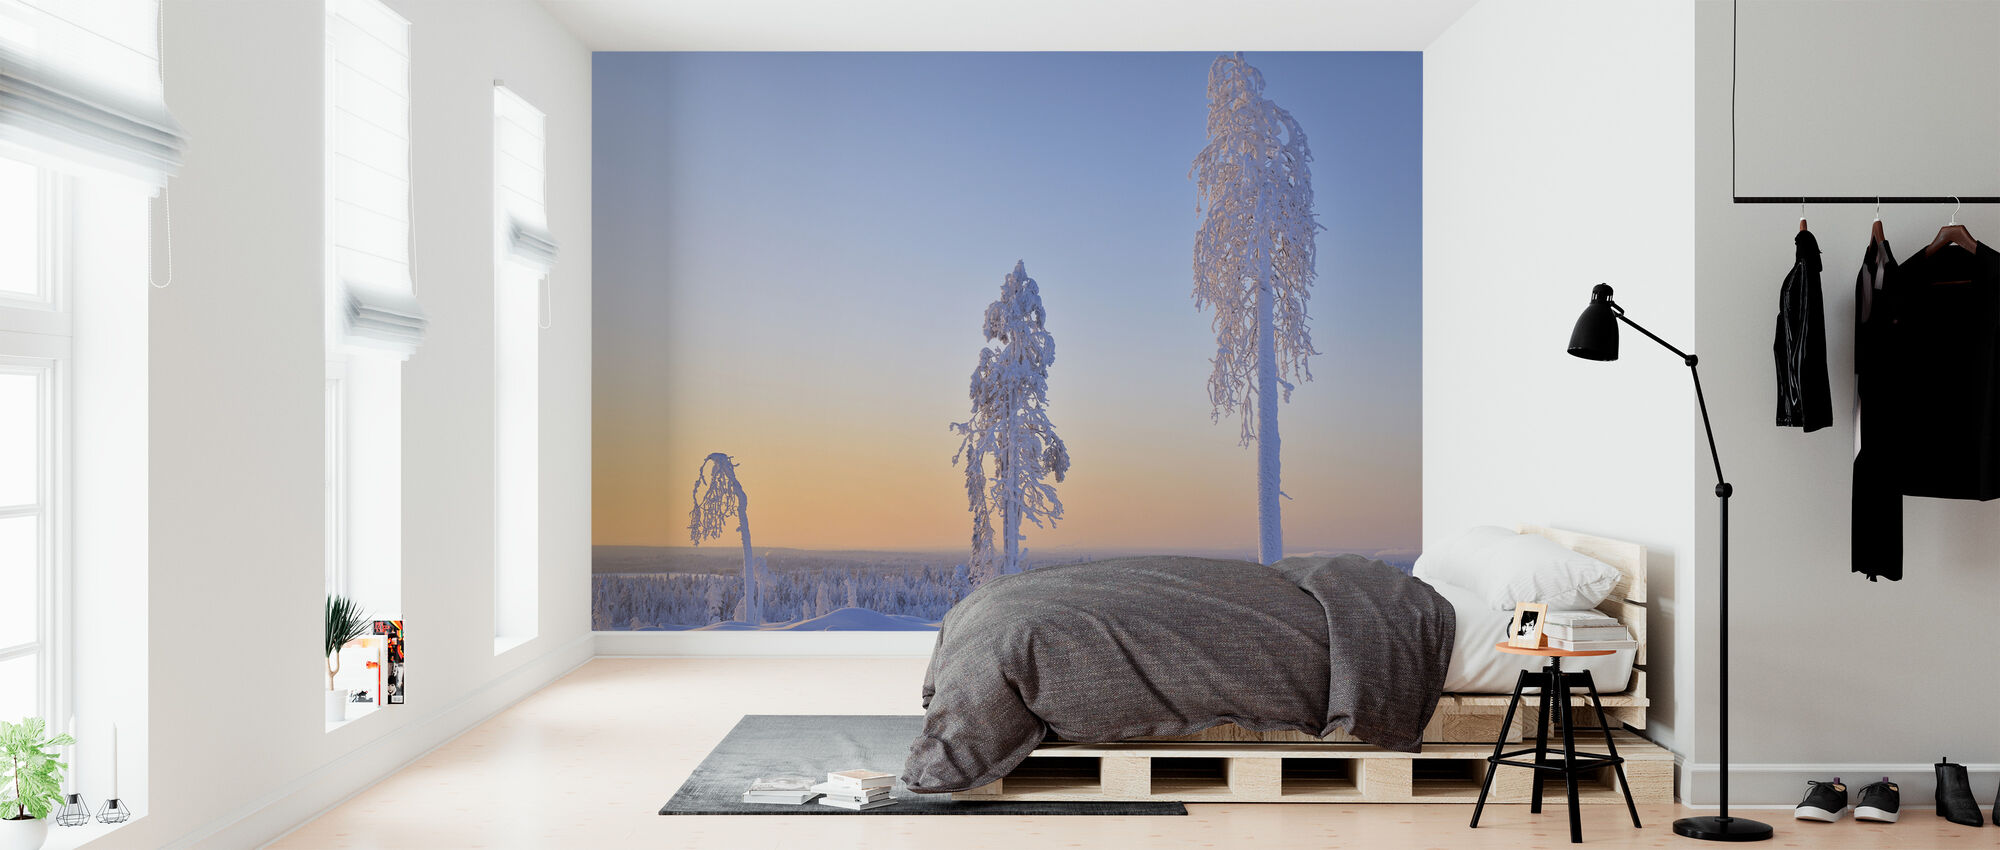 Ostrobothnia in Winter Dress - Wallpaper - Bedroom